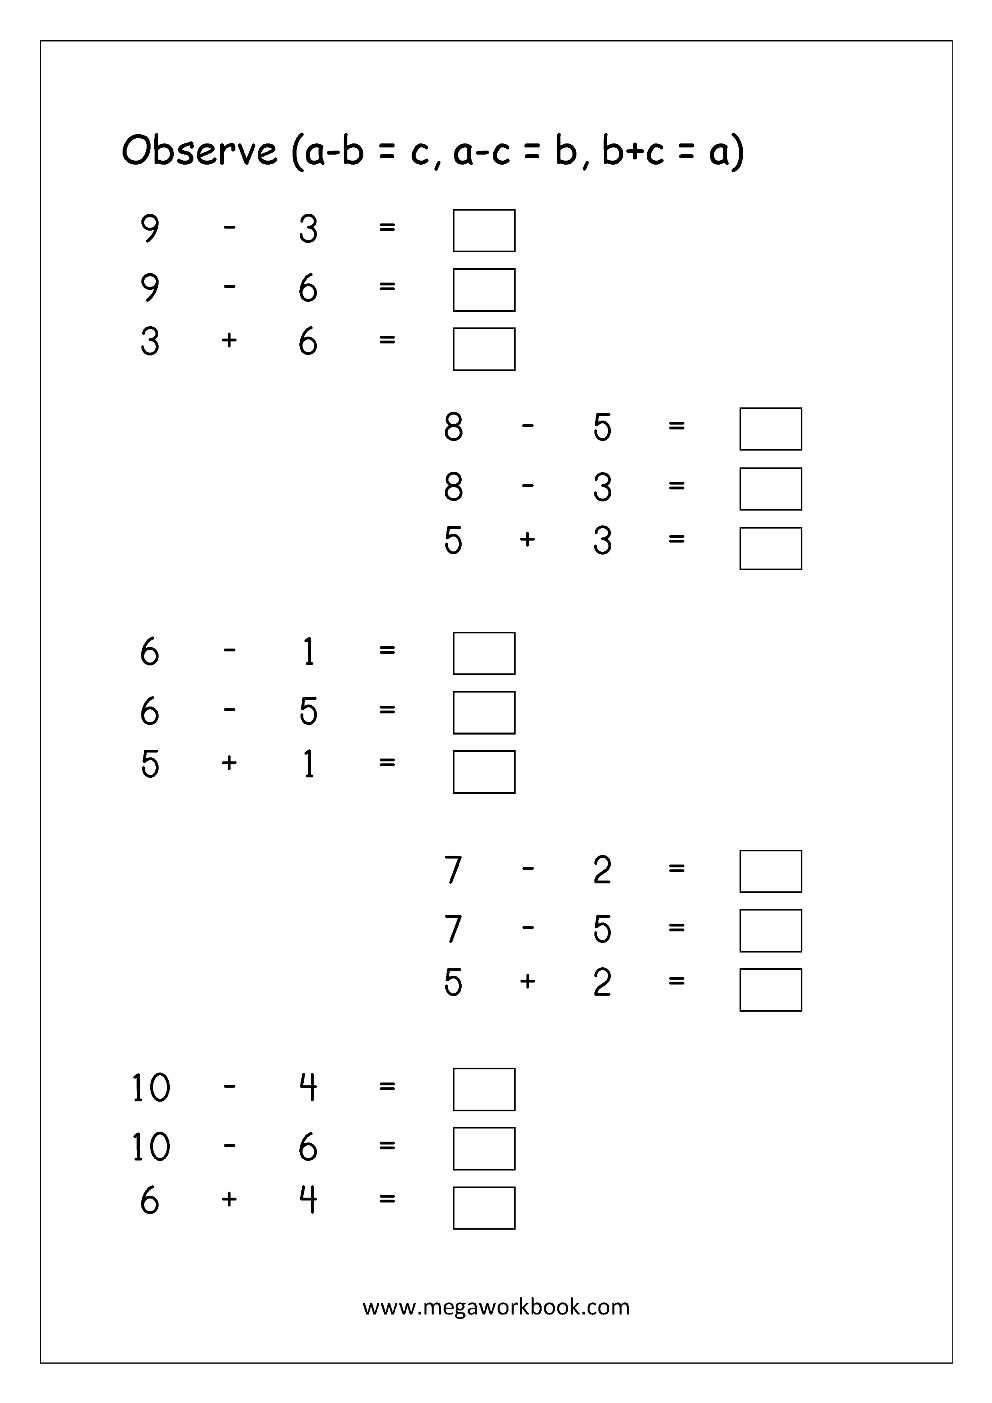 Free Printable Number Subtraction (1-10) Worksheets For ...